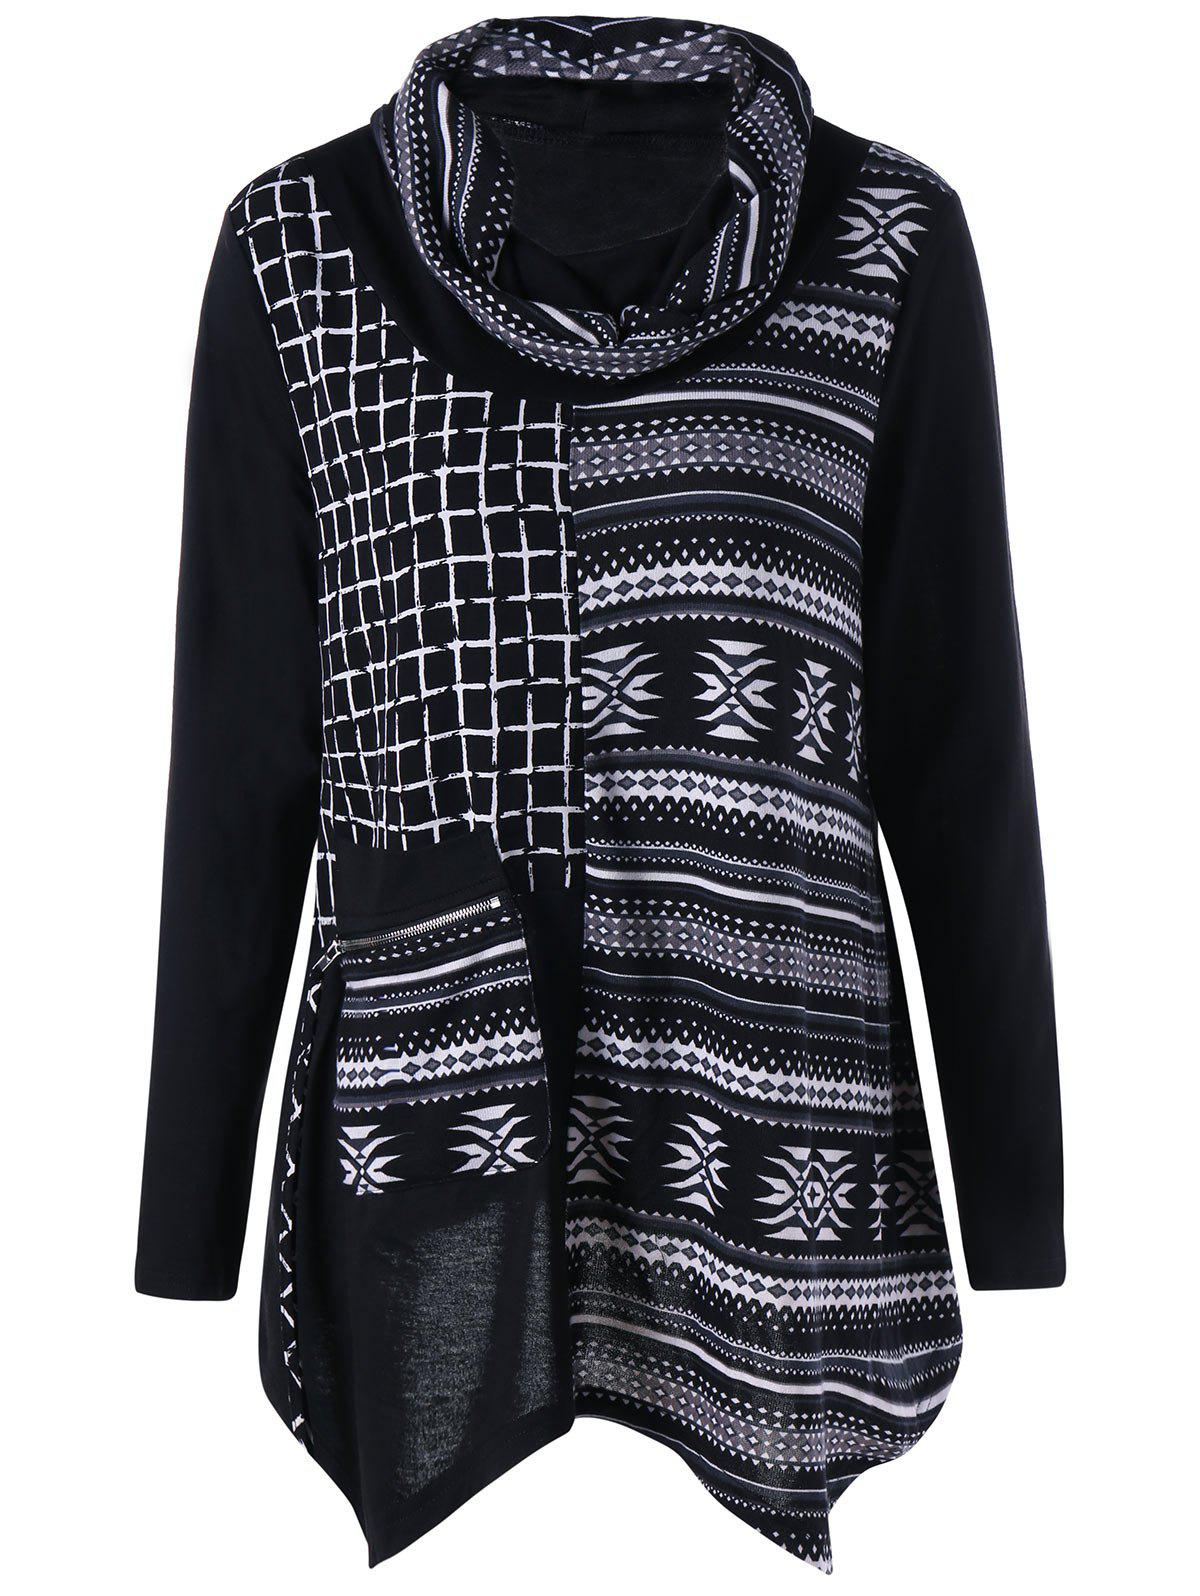 Plus Size Zipper Pocket Cowl Neck TopWOMEN<br><br>Size: 4XL; Color: BLACK; Material: Polyester,Spandex; Shirt Length: Long; Sleeve Length: Full; Collar: Cowl Neck; Style: Casual; Season: Fall,Spring; Embellishment: Pockets; Pattern Type: Plaid; Weight: 0.3700kg; Package Contents: 1 x Top;